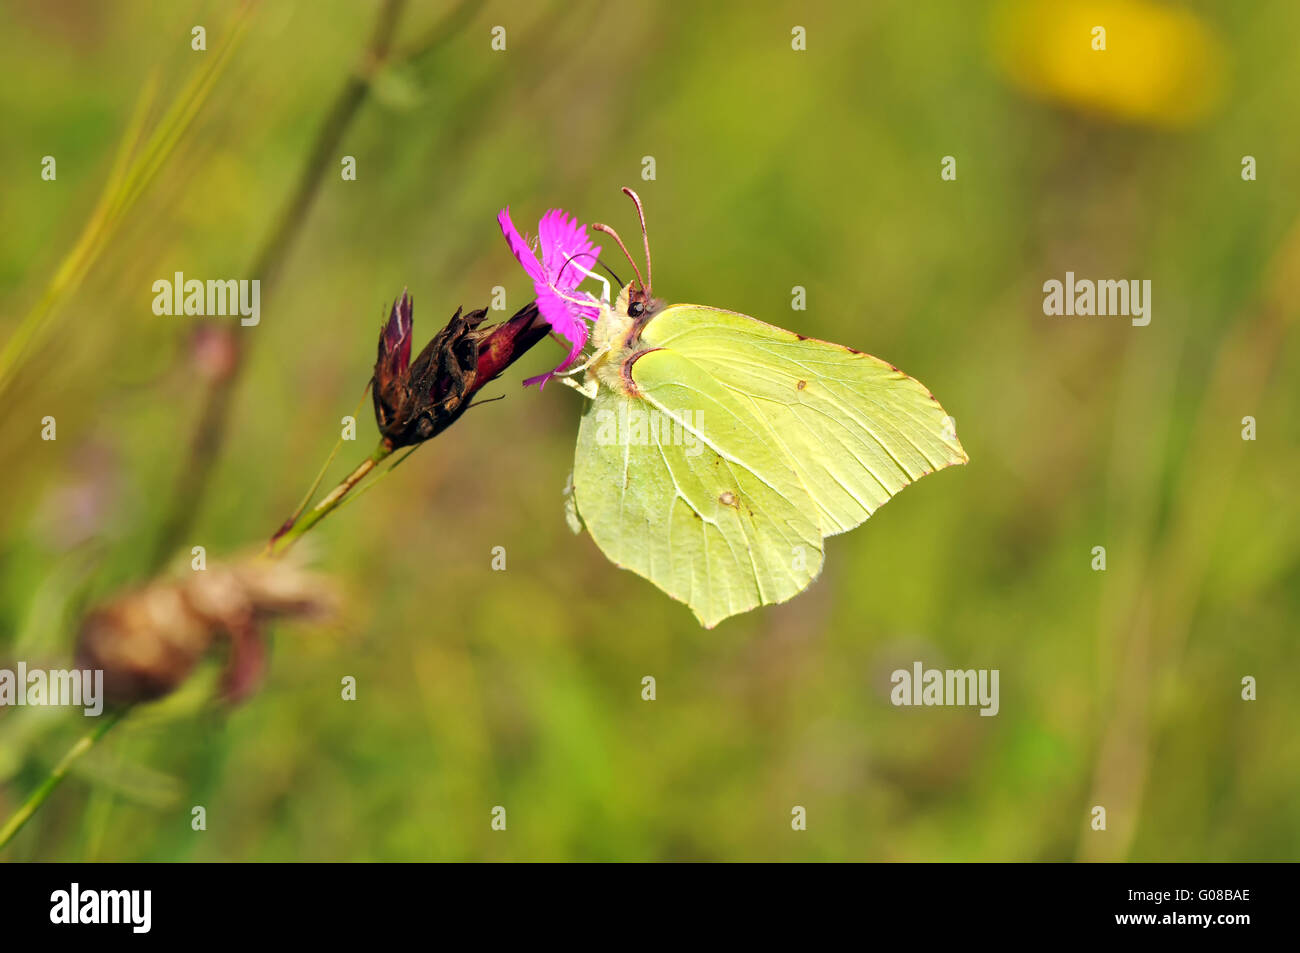 Insect Pictures Stock Photos Amp Insect Pictures Stock